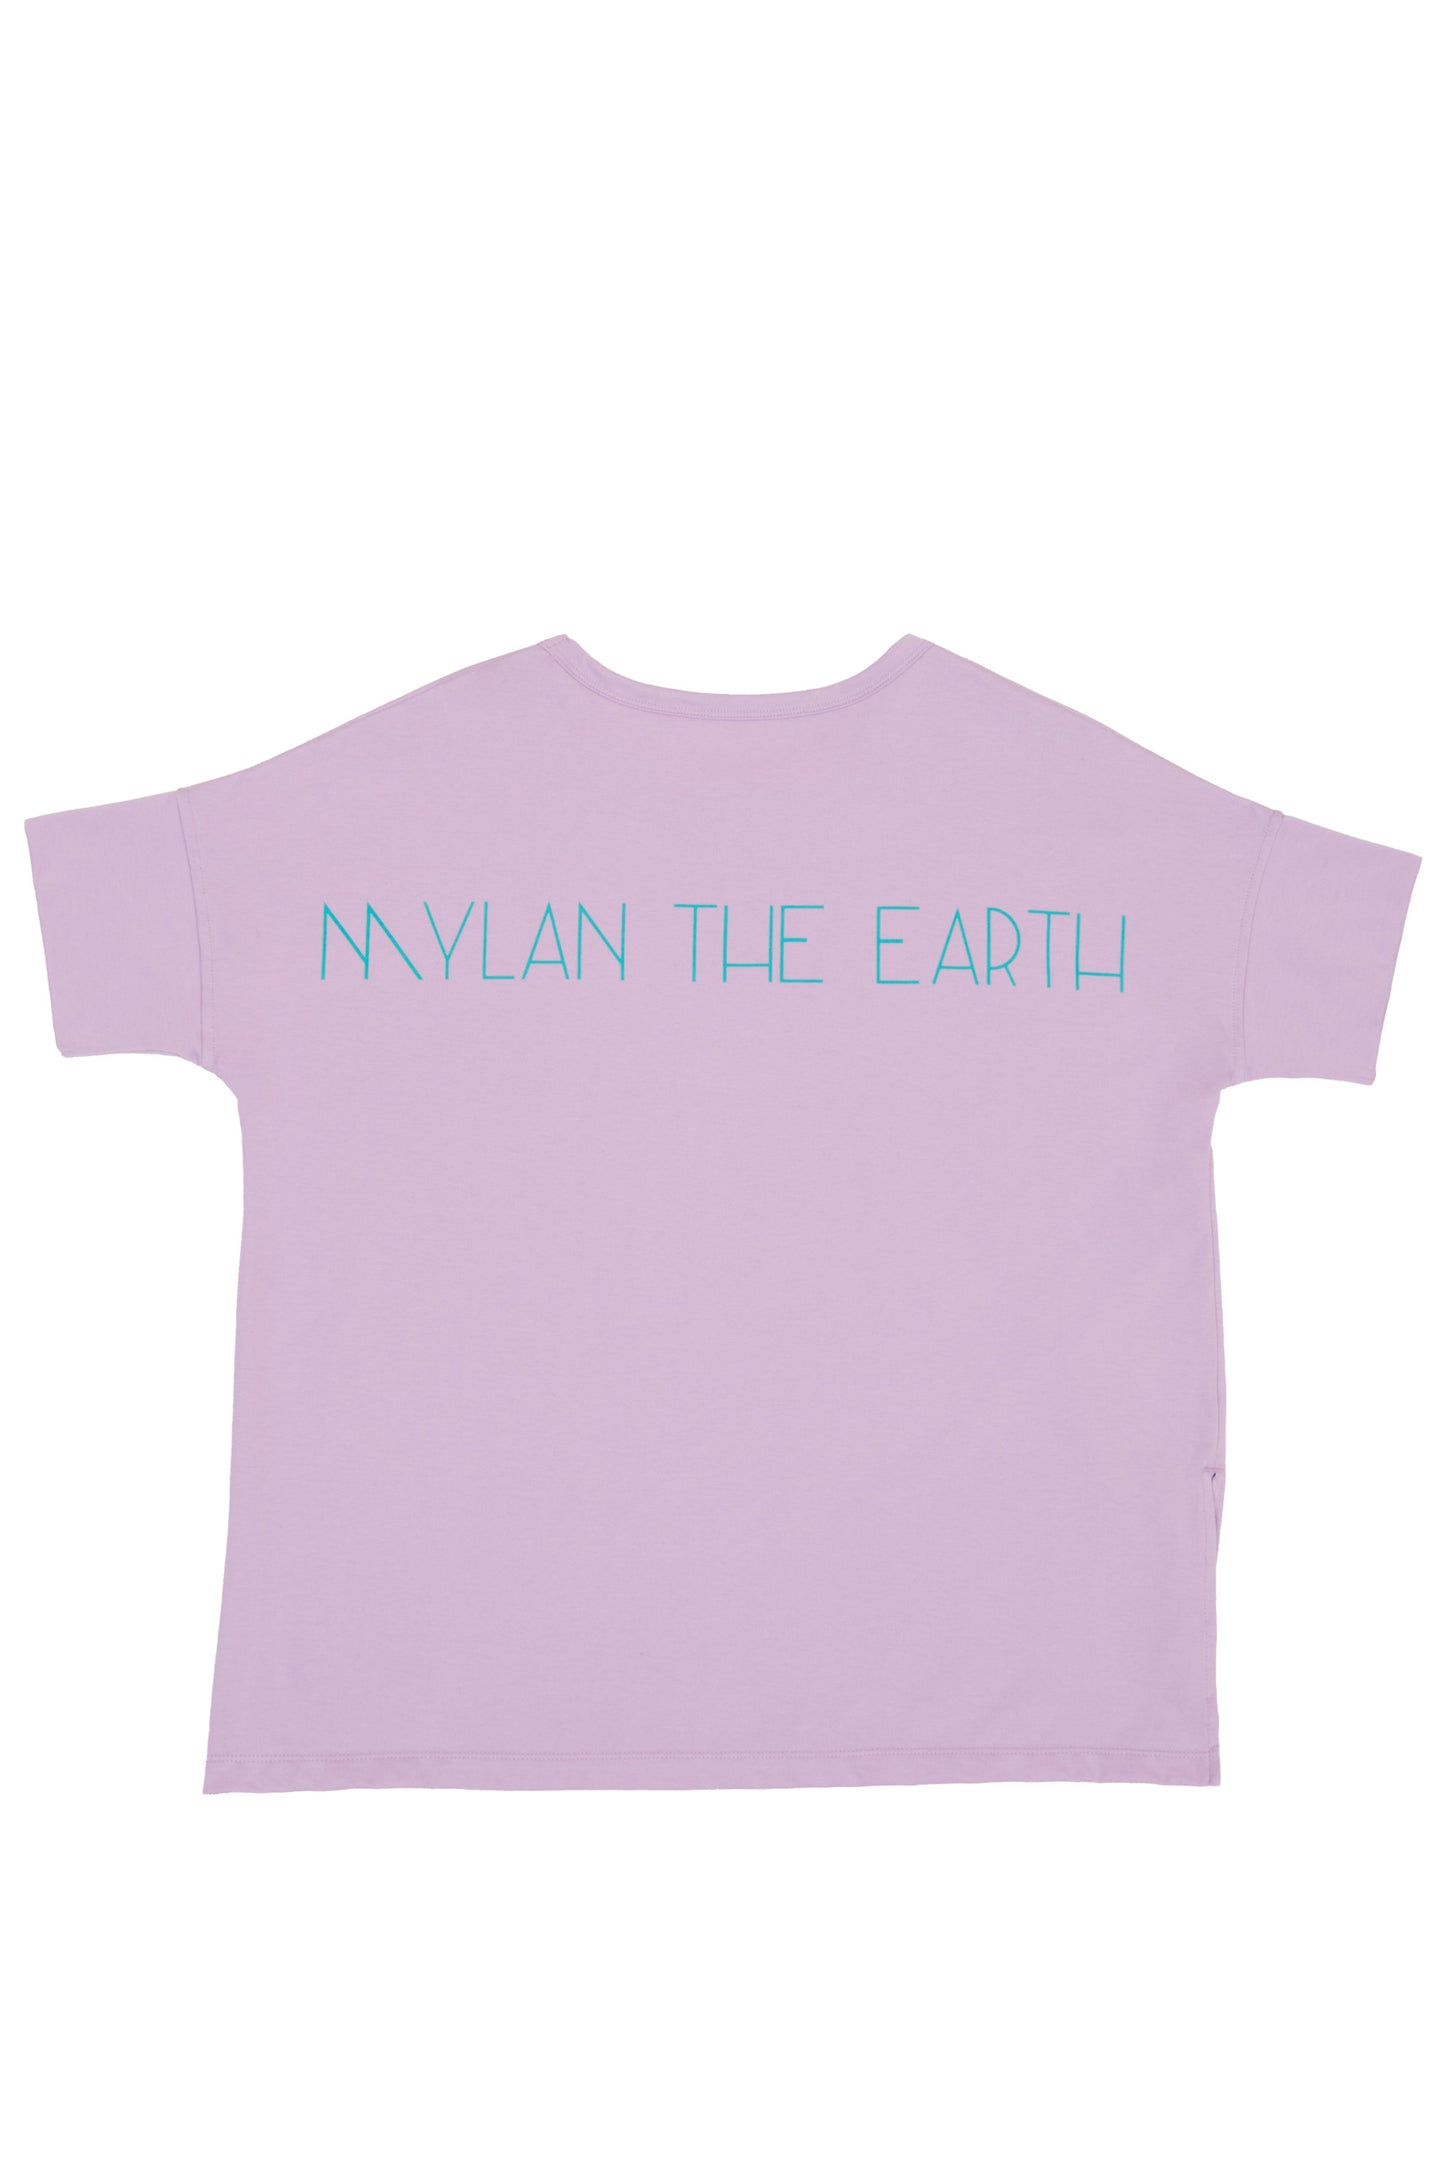 MYLAN THE EARTH TEE | Lilac